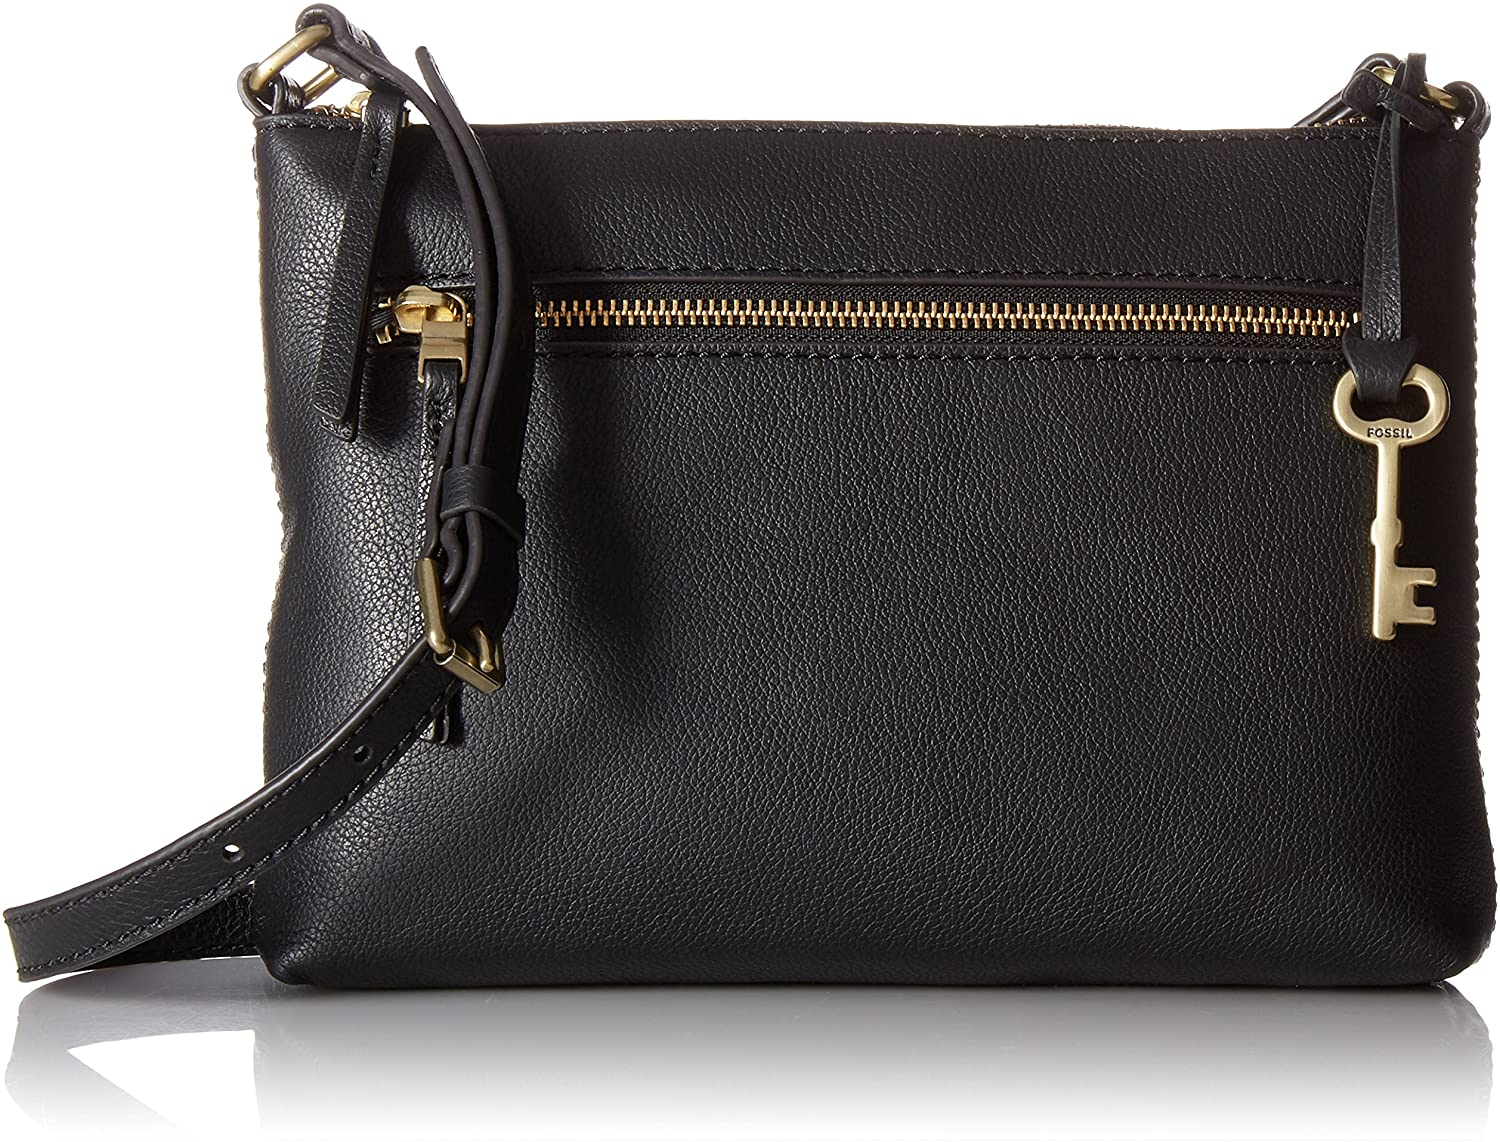 Fossil Fiona Small Crossbody bag